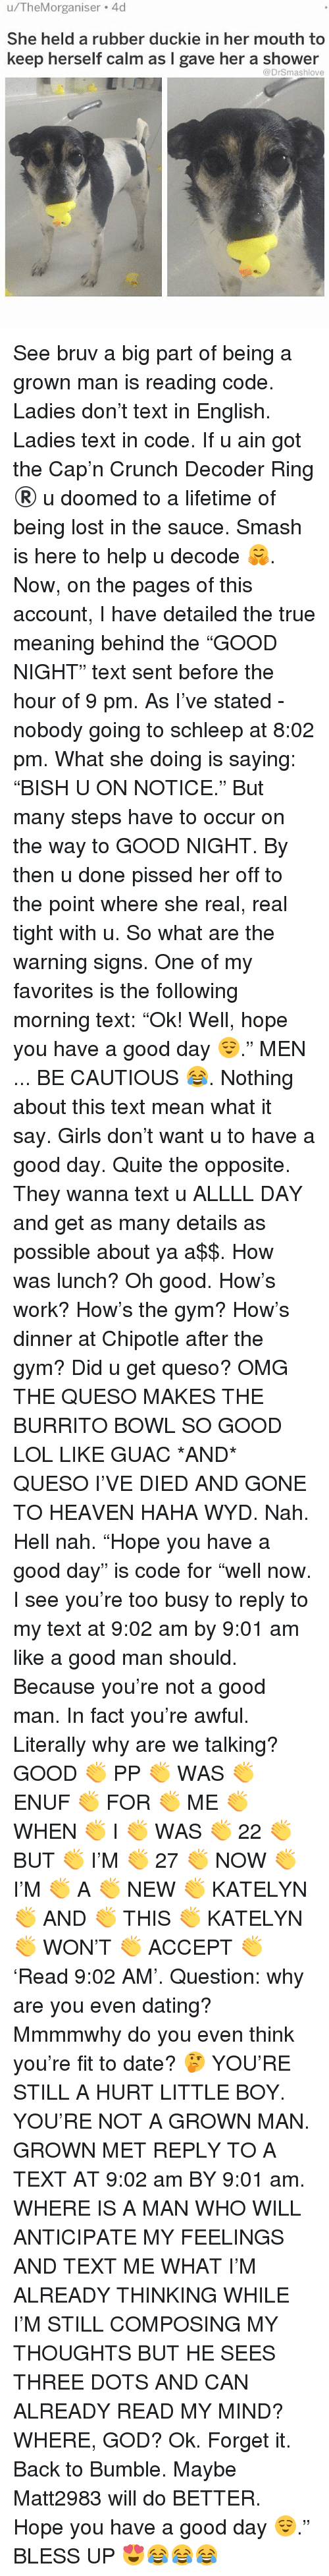 """Bless Up, Chipotle, and Dating: u/TheMorganiser 4d  She held a rubber duckie in her mouth to  keep herself calm as I gave her a shower  @DrSmashlove See bruv a big part of being a grown man is reading code. Ladies don't text in English. Ladies text in code. If u ain got the Cap'n Crunch Decoder Ring ®️ u doomed to a lifetime of being lost in the sauce. Smash is here to help u decode 🤗. Now, on the pages of this account, I have detailed the true meaning behind the """"GOOD NIGHT"""" text sent before the hour of 9 pm. As I've stated - nobody going to schleep at 8:02 pm. What she doing is saying: """"BISH U ON NOTICE."""" But many steps have to occur on the way to GOOD NIGHT. By then u done pissed her off to the point where she real, real tight with u. So what are the warning signs. One of my favorites is the following morning text: """"Ok! Well, hope you have a good day 😌."""" MEN ... BE CAUTIOUS 😂. Nothing about this text mean what it say. Girls don't want u to have a good day. Quite the opposite. They wanna text u ALLLL DAY and get as many details as possible about ya a$$. How was lunch? Oh good. How's work? How's the gym? How's dinner at Chipotle after the gym? Did u get queso? OMG THE QUESO MAKES THE BURRITO BOWL SO GOOD LOL LIKE GUAC *AND* QUESO I'VE DIED AND GONE TO HEAVEN HAHA WYD. Nah. Hell nah. """"Hope you have a good day"""" is code for """"well now. I see you're too busy to reply to my text at 9:02 am by 9:01 am like a good man should. Because you're not a good man. In fact you're awful. Literally why are we talking? GOOD 👏 PP 👏 WAS 👏 ENUF 👏 FOR 👏 ME 👏 WHEN 👏 I 👏 WAS 👏 22 👏 BUT 👏 I'M 👏 27 👏 NOW 👏 I'M 👏 A 👏 NEW 👏 KATELYN 👏 AND 👏 THIS 👏 KATELYN 👏 WON'T 👏 ACCEPT 👏 'Read 9:02 AM'. Question: why are you even dating? Mmmmwhy do you even think you're fit to date? 🤔 YOU'RE STILL A HURT LITTLE BOY. YOU'RE NOT A GROWN MAN. GROWN MET REPLY TO A TEXT AT 9:02 am BY 9:01 am. WHERE IS A MAN WHO WILL ANTICIPATE MY FEELINGS AND TEXT ME WHAT I'M ALREADY THINKING WHILE I'M STILL COMPOSING MY THOUGHTS """